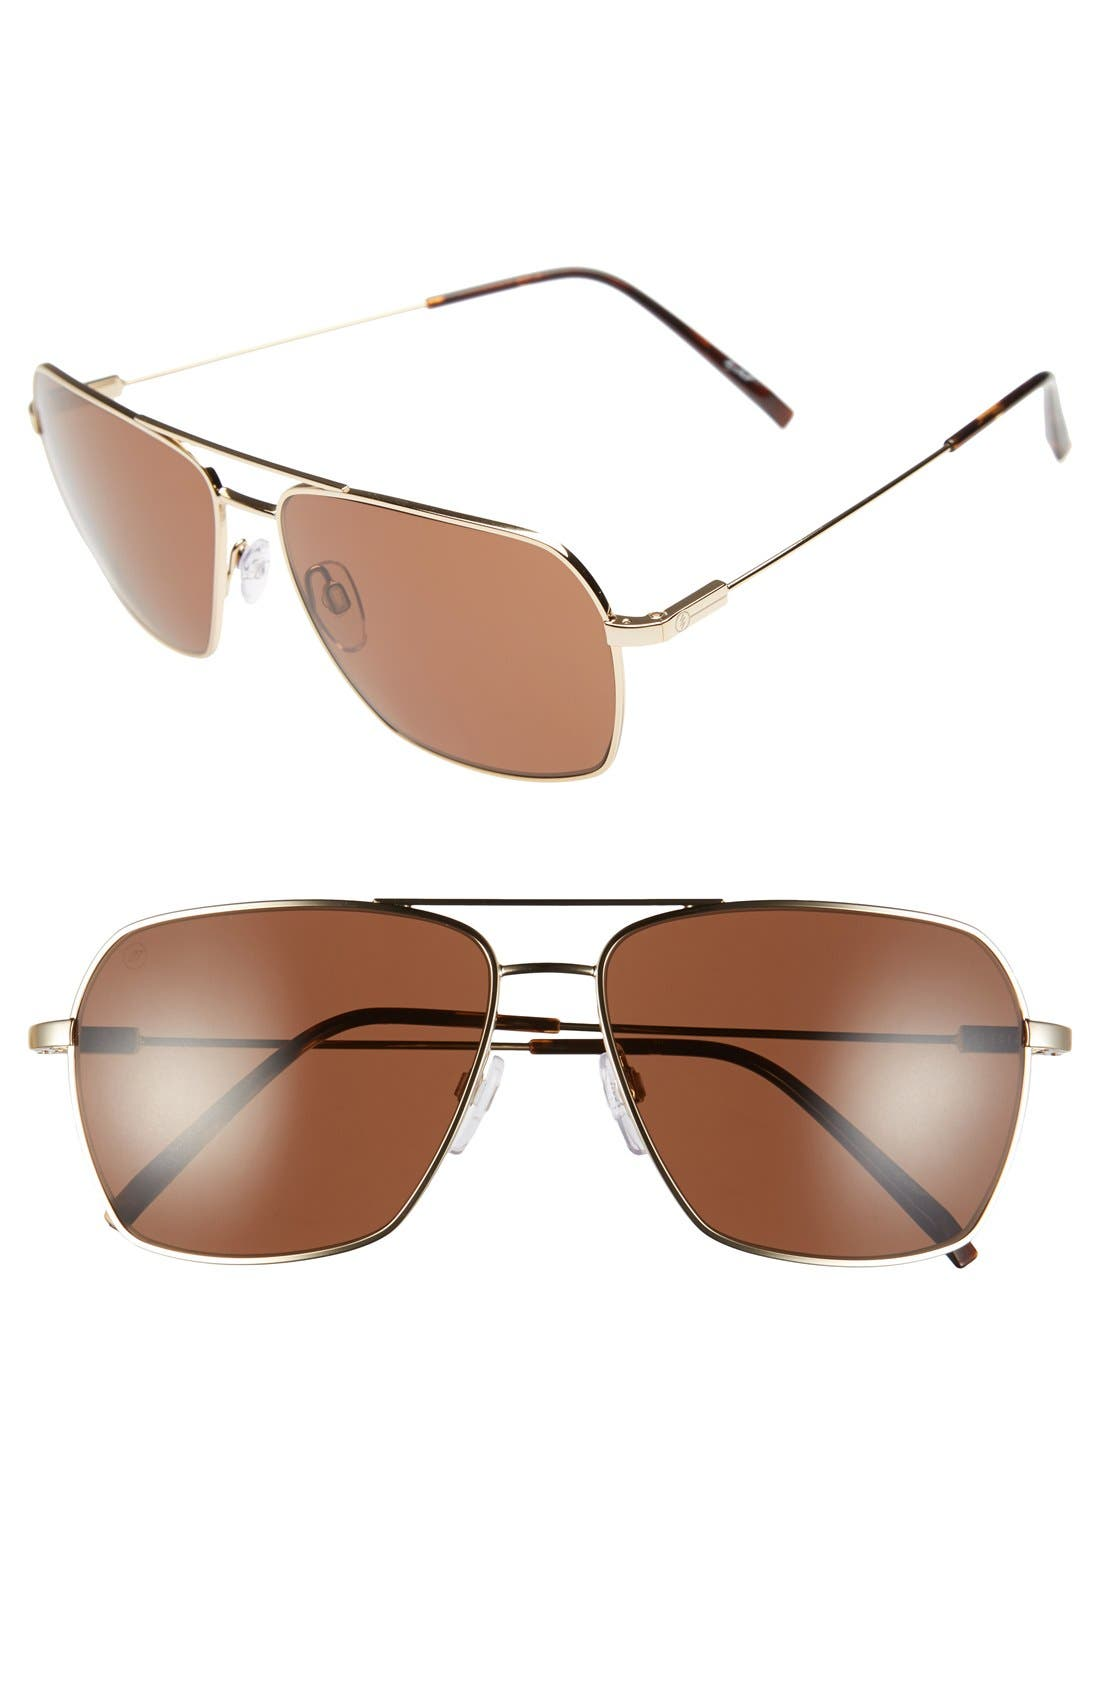 ELECTRIC 'AV2' 59mm Sunglasses